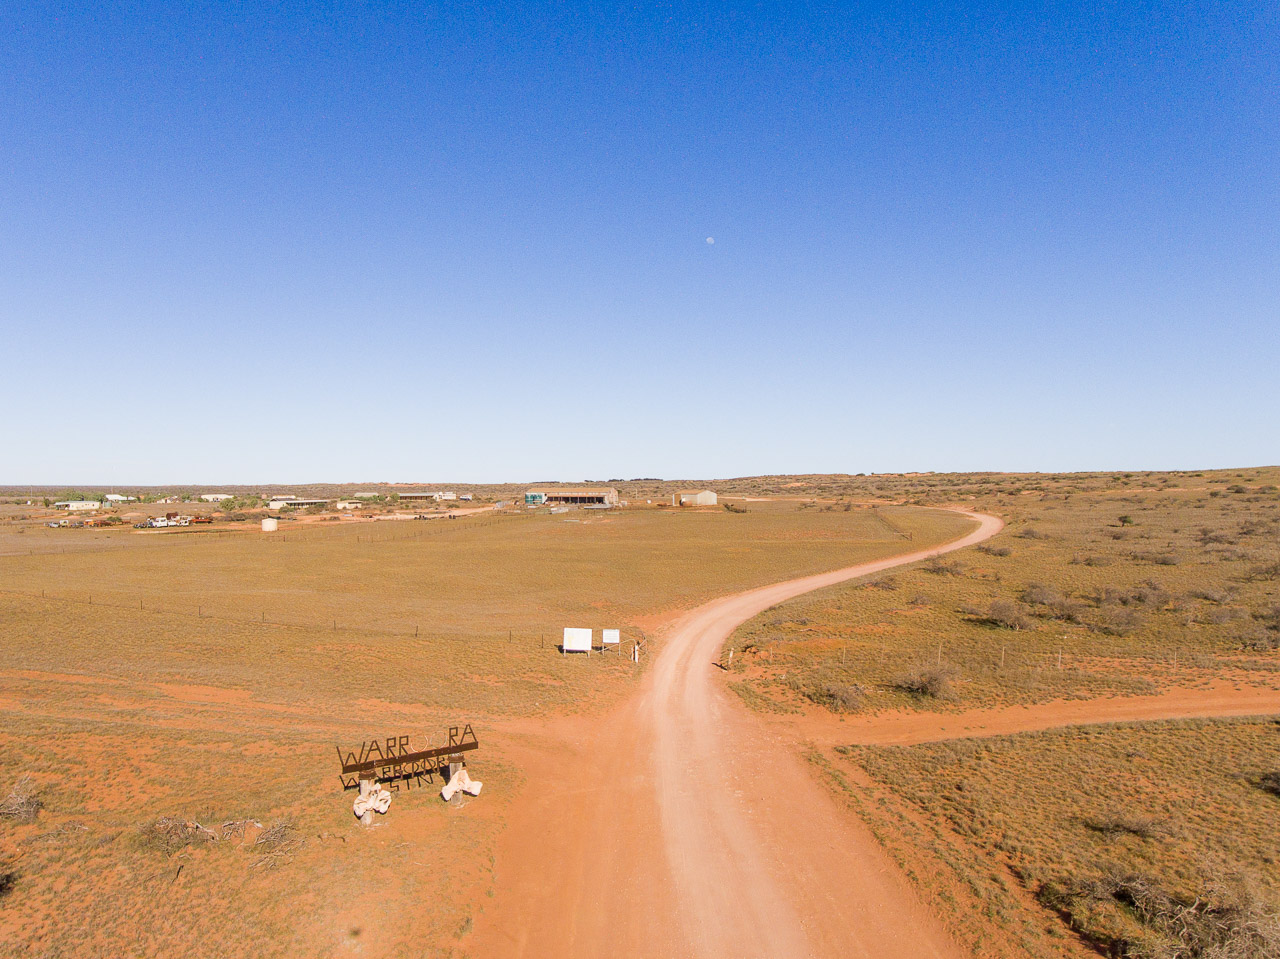 Aerial image of the homestead and station buildings at Warroora, WA